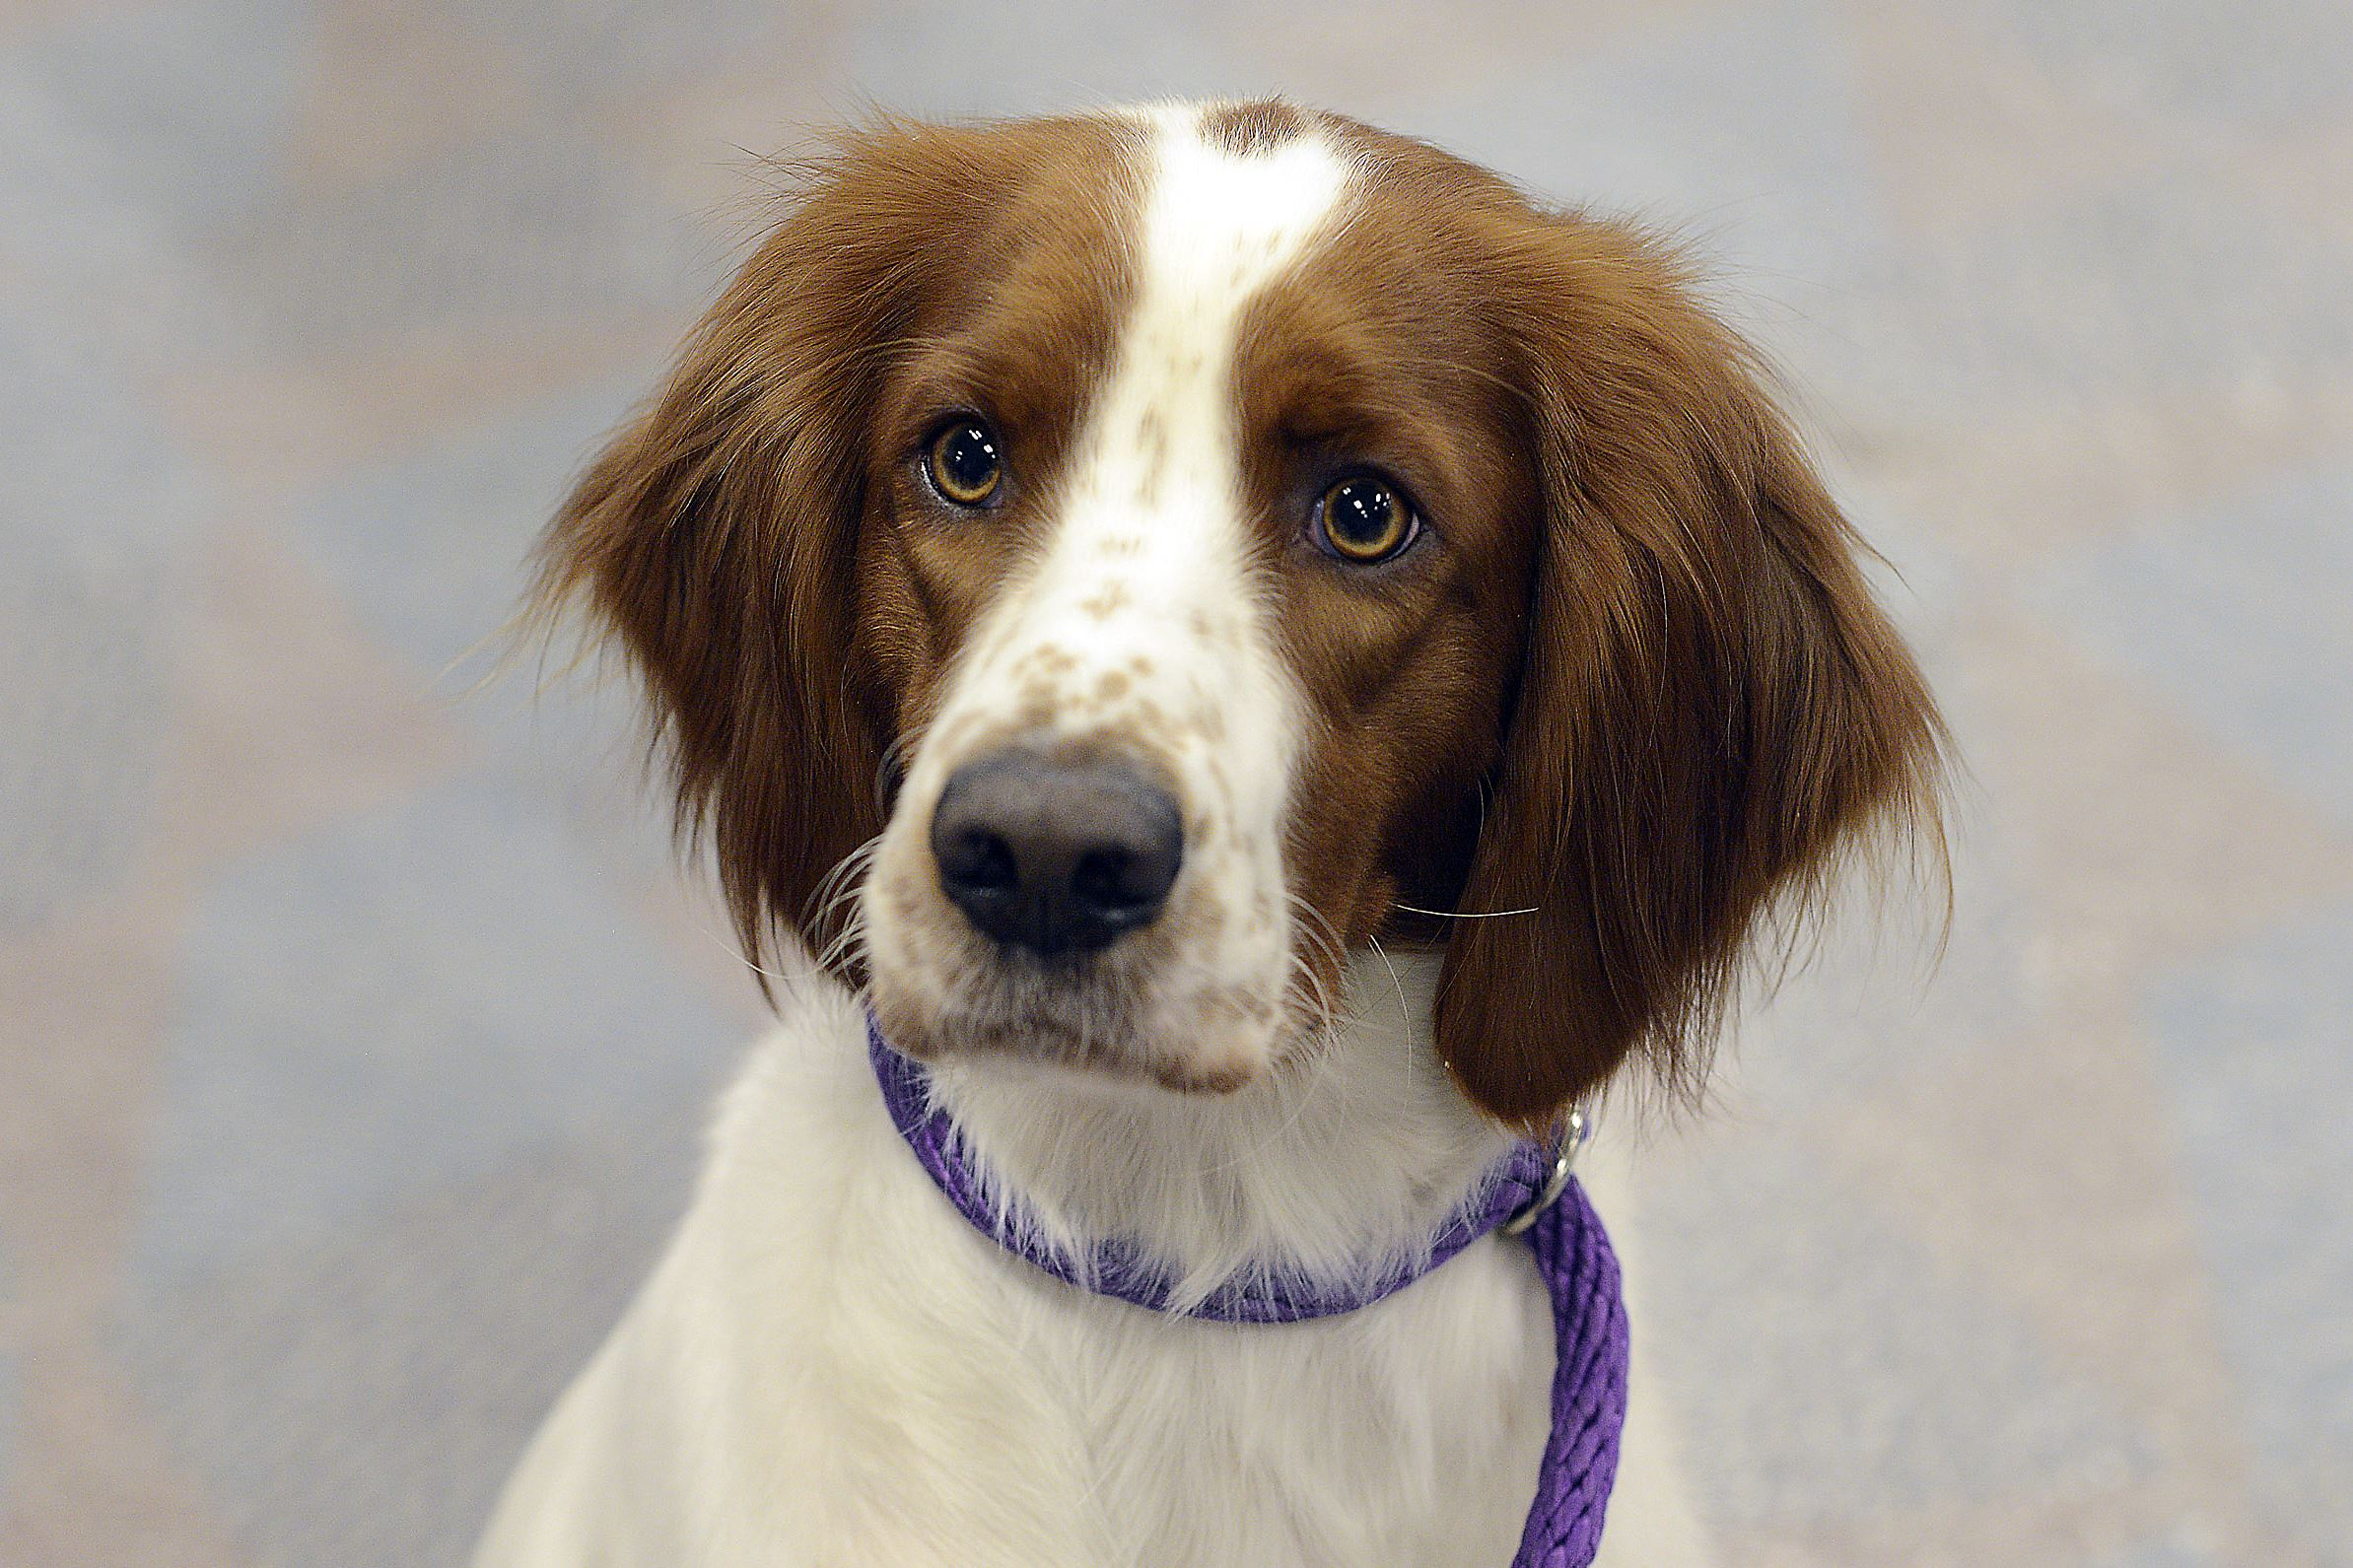 """20170402lrpadogshow14-12 Kairi, a 3-year-old Irish red and white setter, participated in """"Meet the Breeds"""" last weekend at the Western Pennsylvania Kennel Association dog show at the Monroeville Convention Center."""